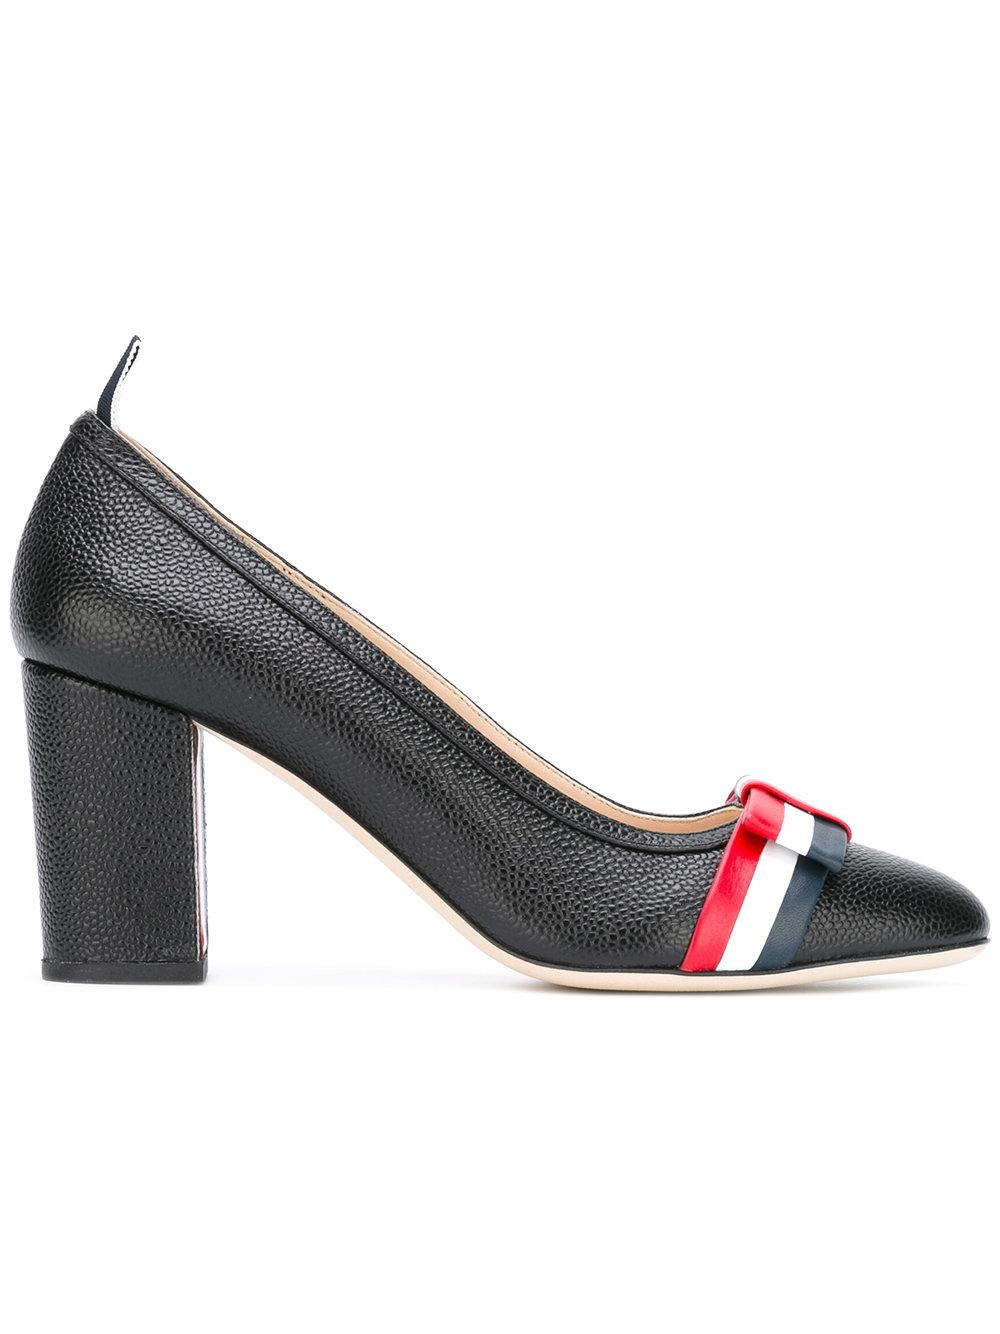 Thom Browne Striped Shoes